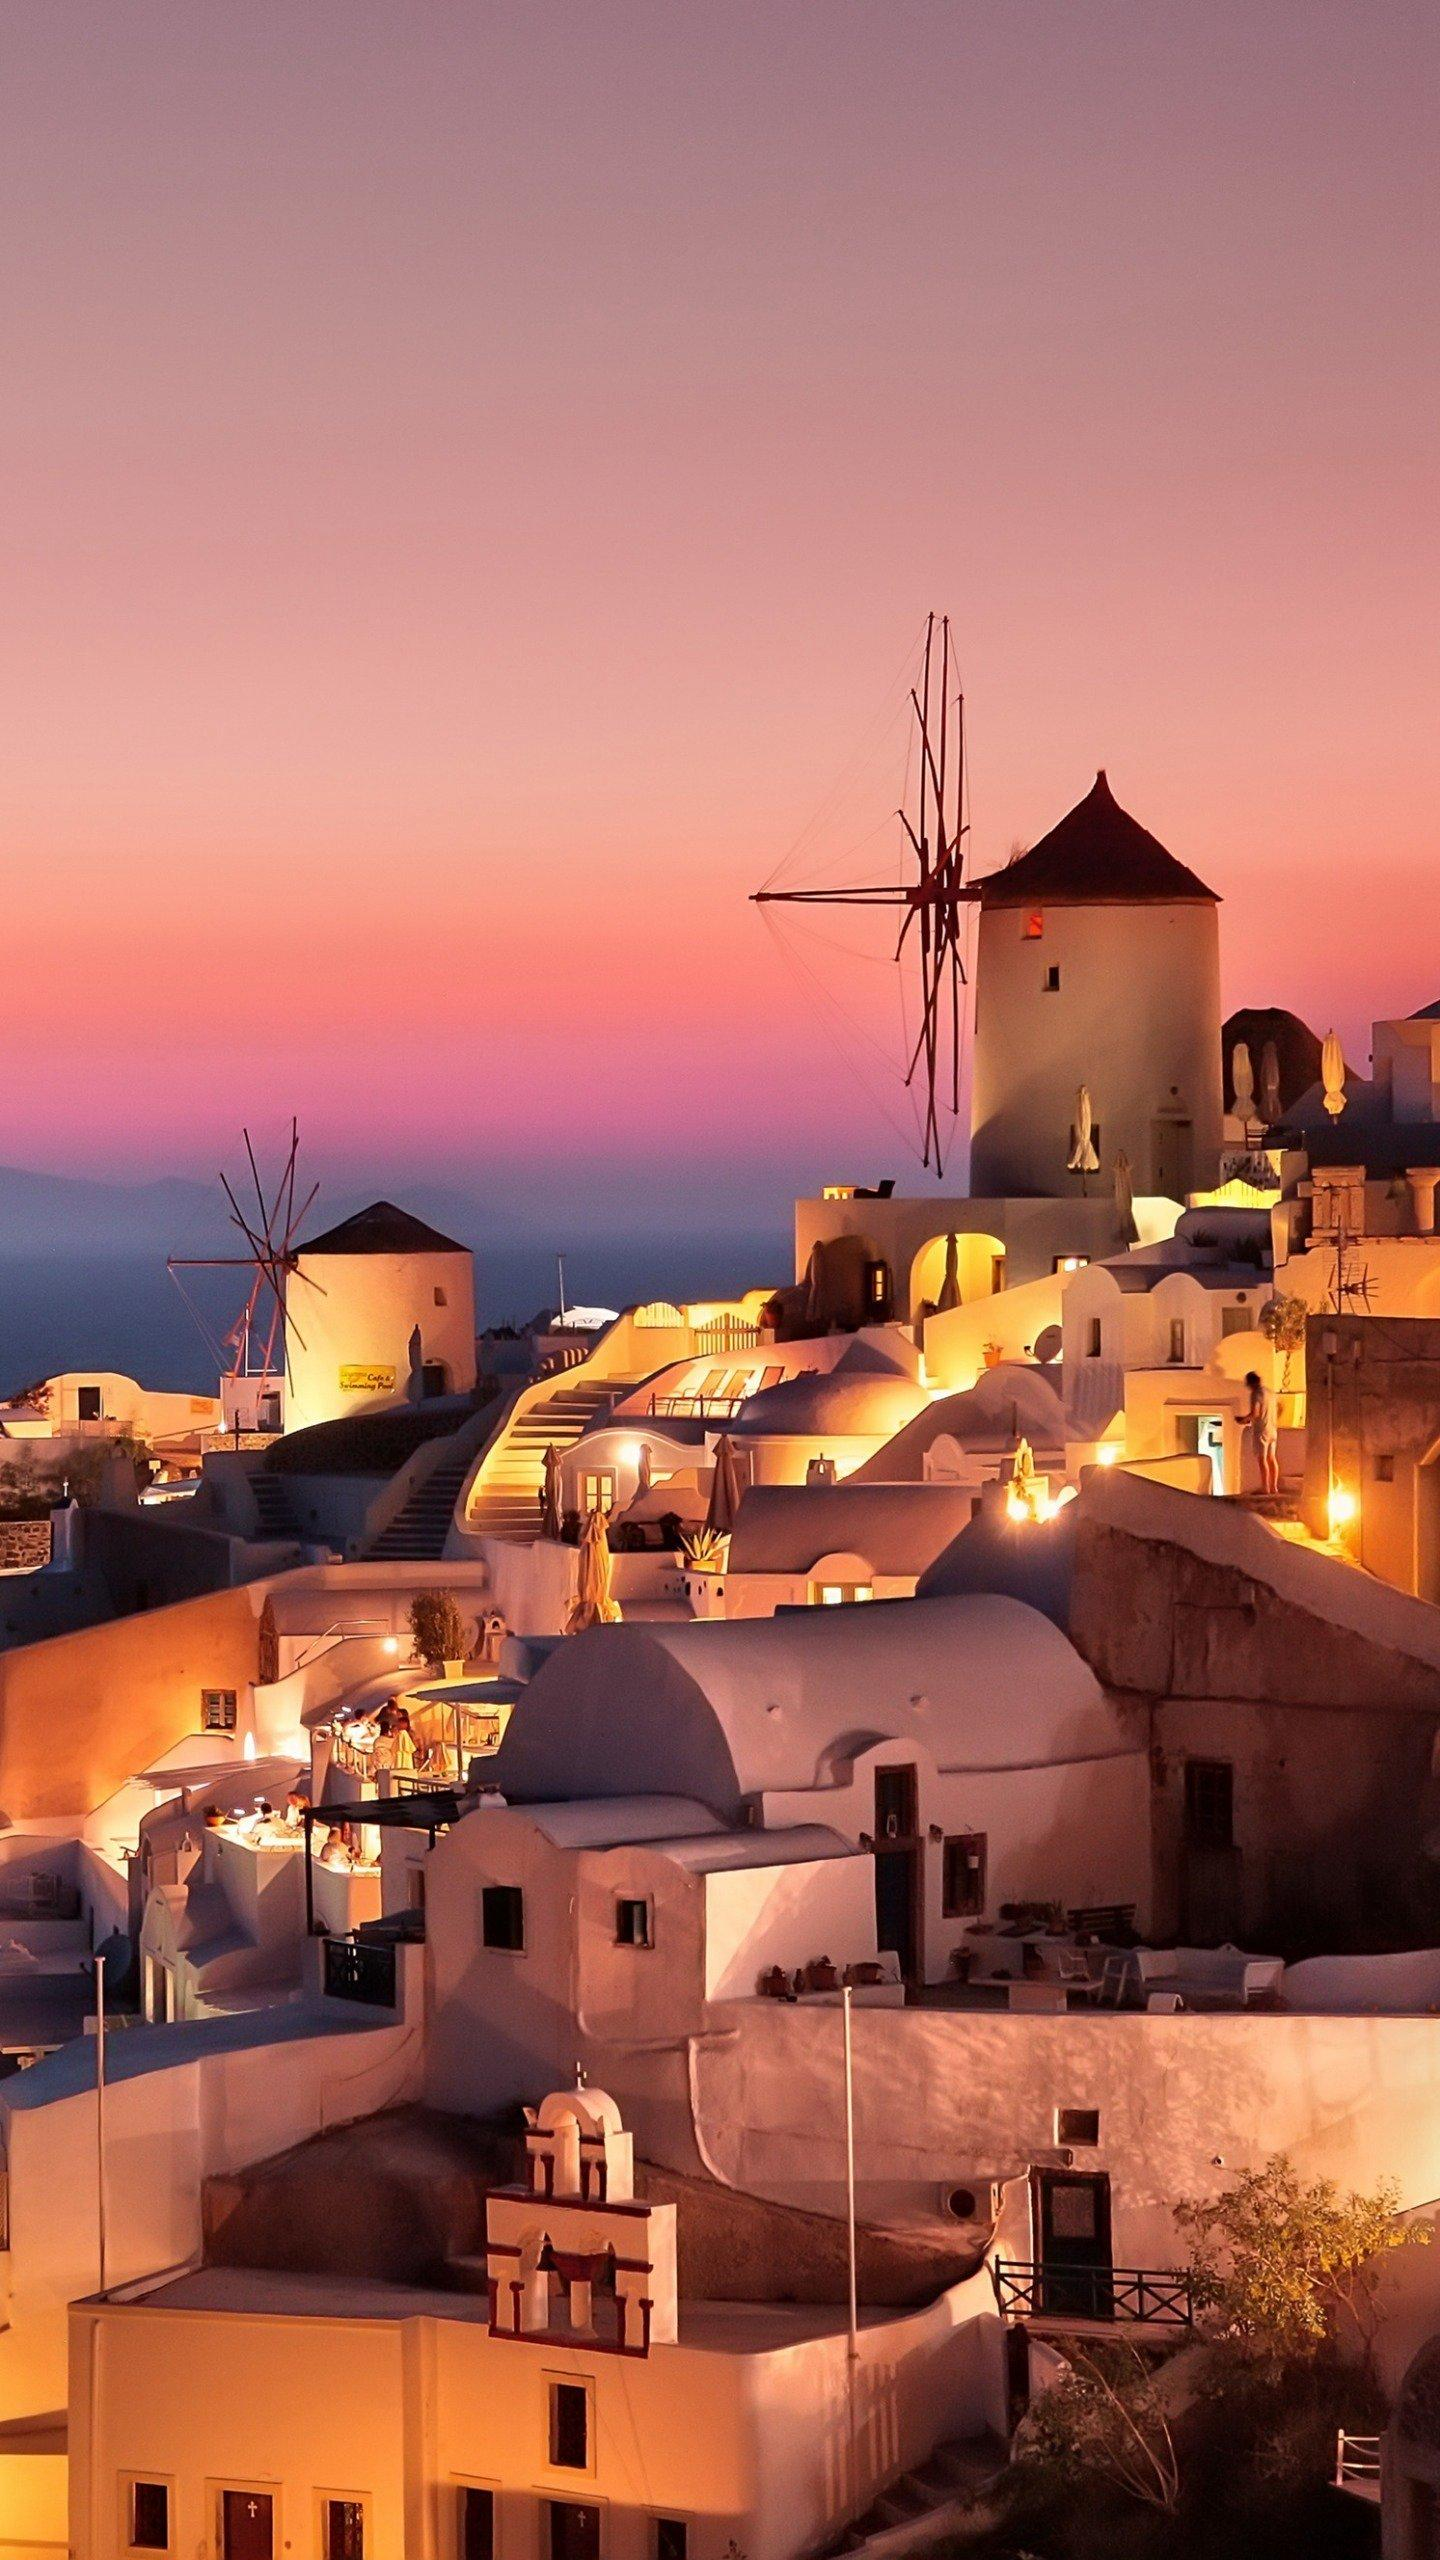 A romantic place. Santorini is the brightest pearl in the Aegean Sea, giving a dreamy and unreal feeling.